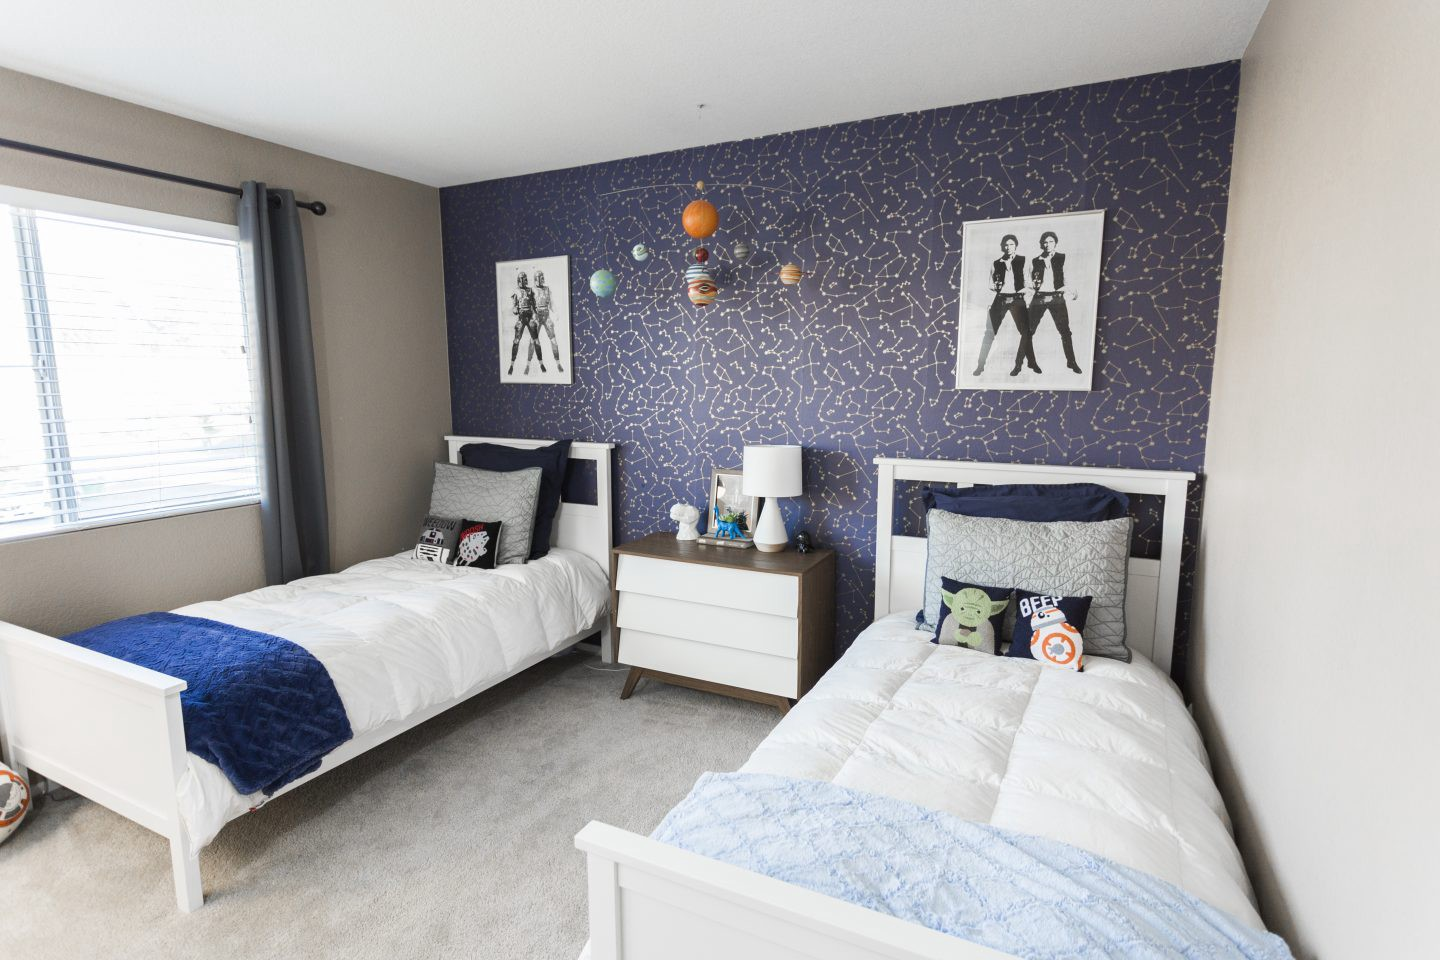 Outer Space Star Wars Bedroom Ideas featured by top Orange County lifestyle blog, Dress Me Blonde